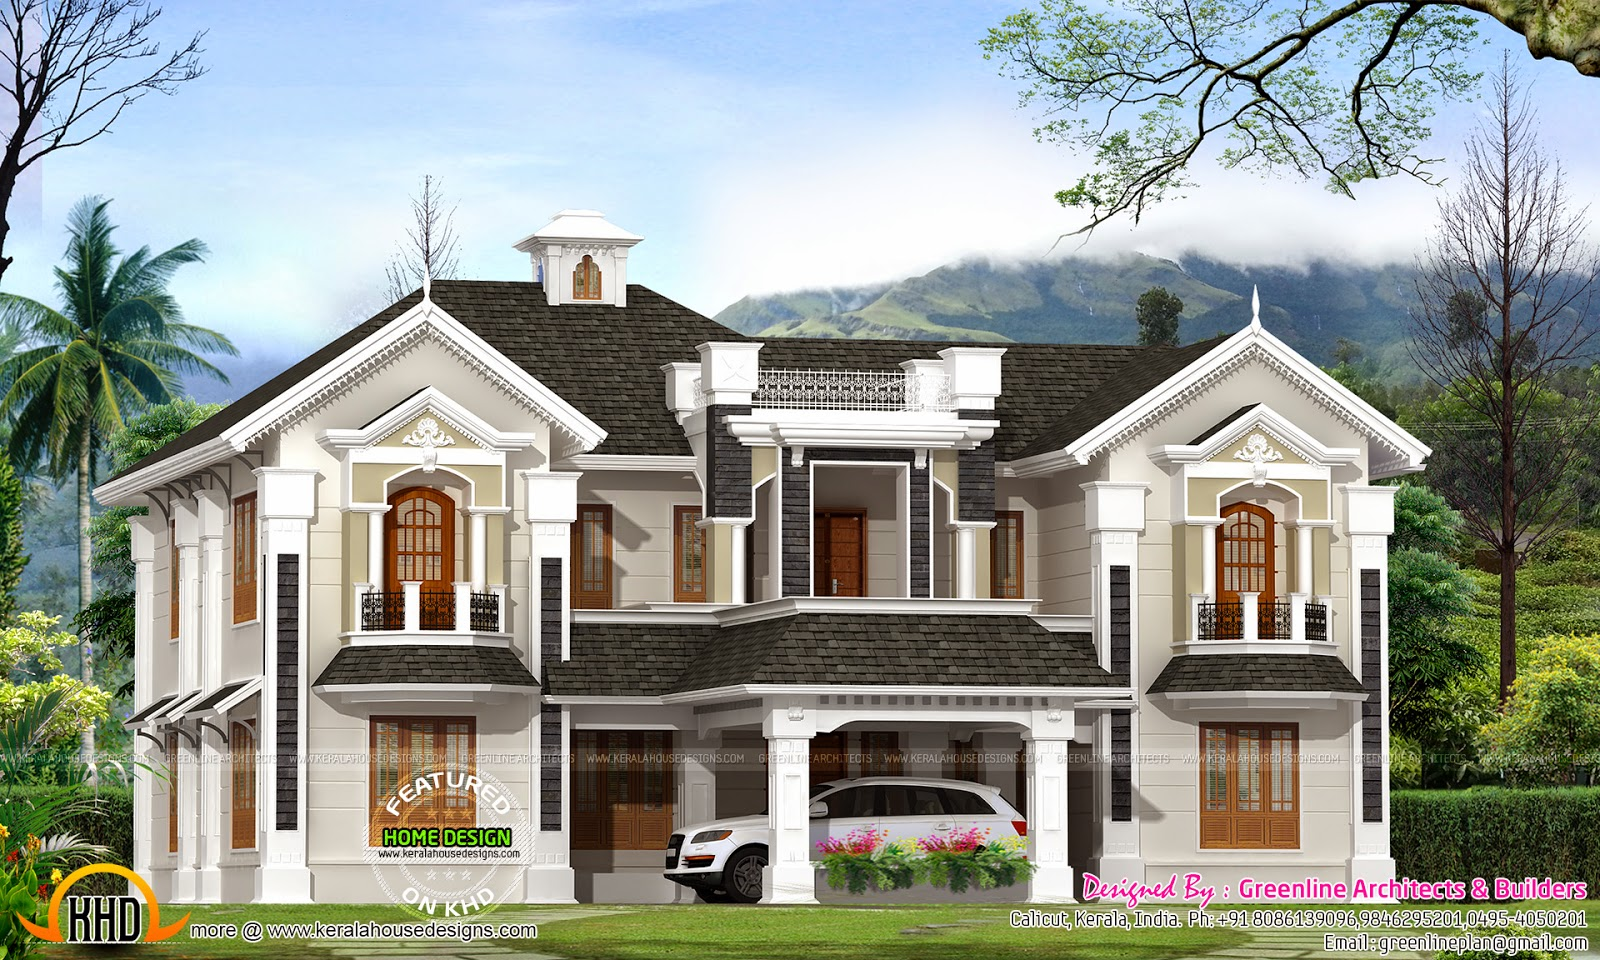 colonial style house in kerala kerala home design and